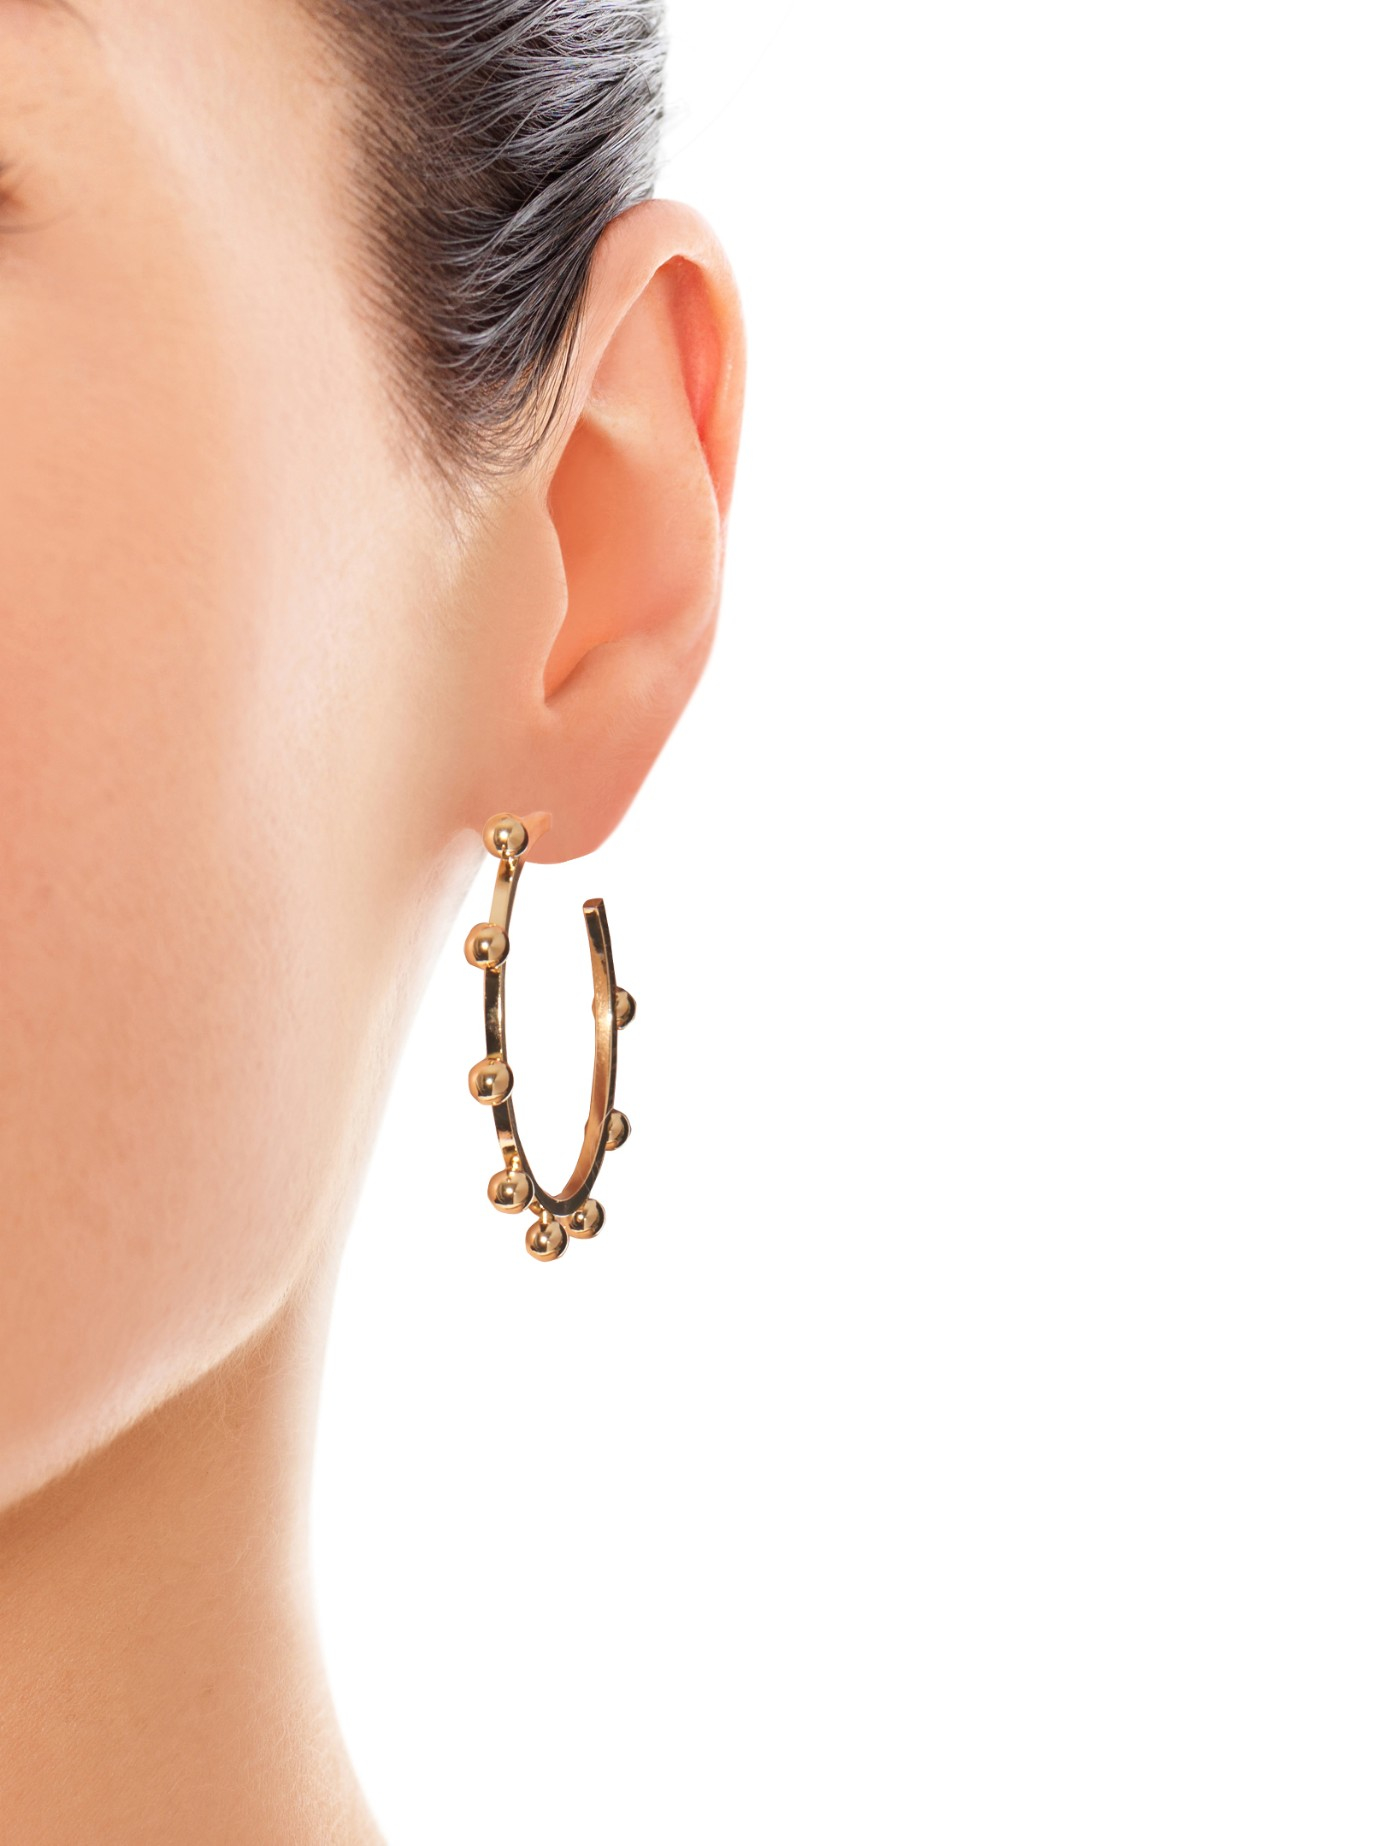 earrings borgo eddie in metallic gold jewelry hoop pyramid gallery lyst product stud normal